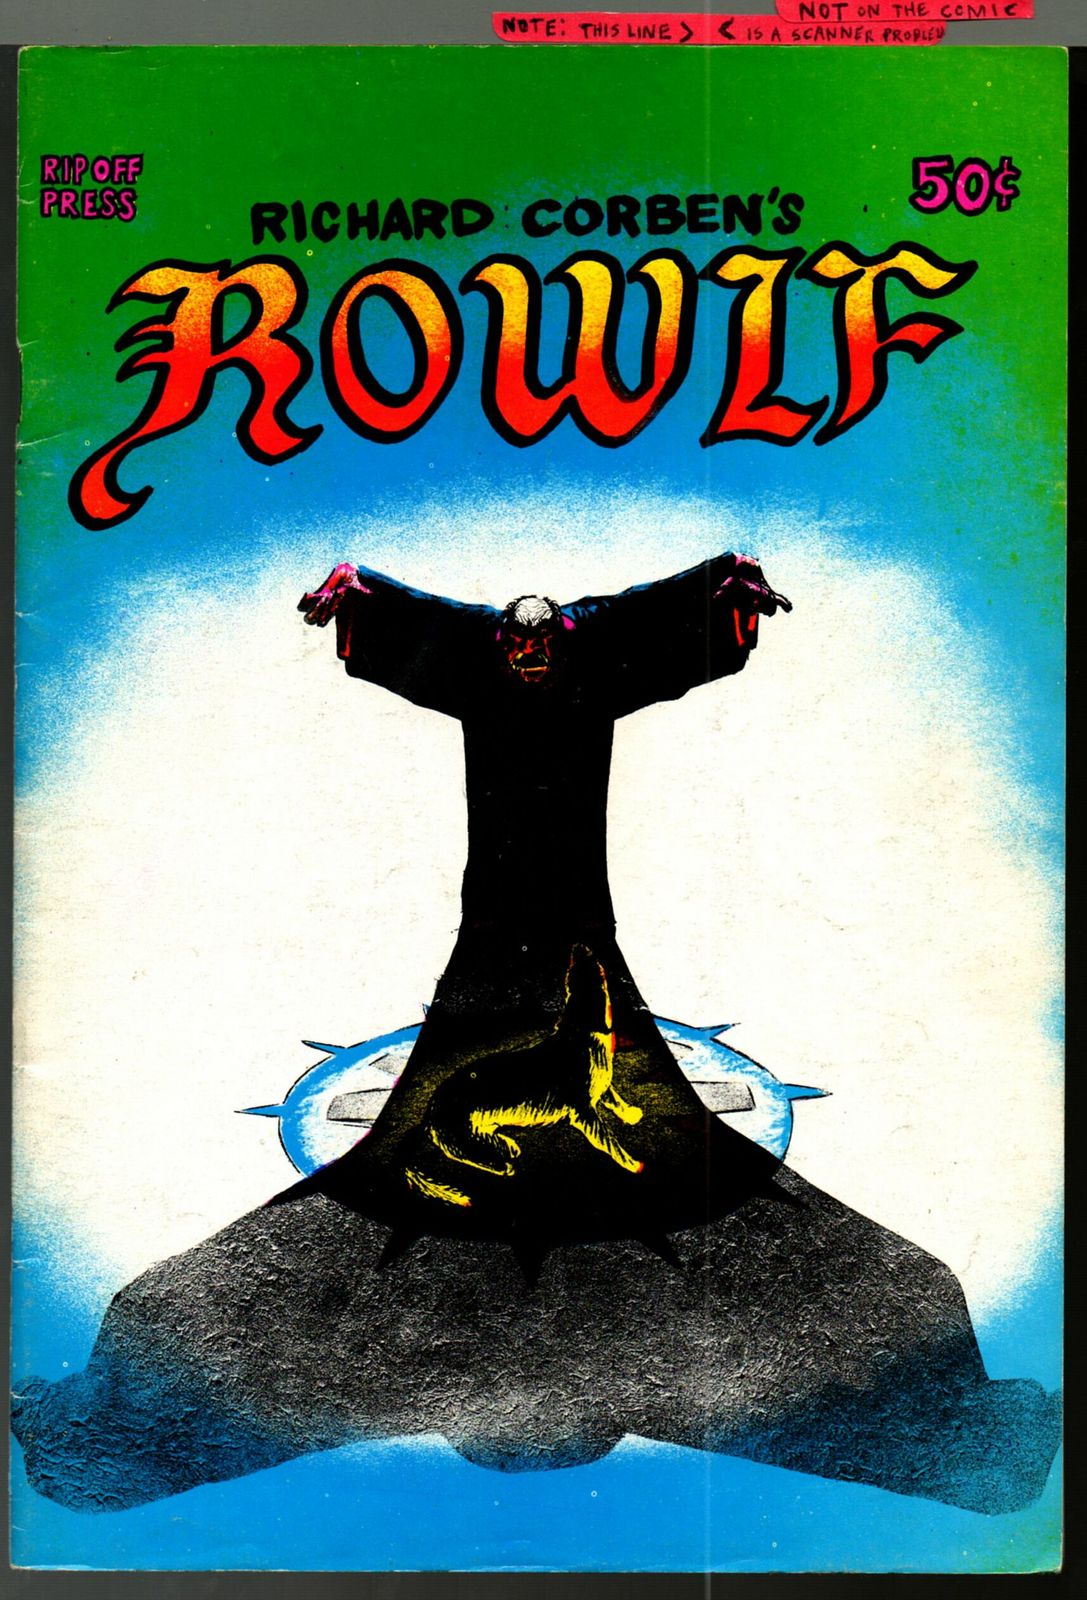 Rowlf, Rip Off Press 1971, Richard Corben, underground comix, 1st printing